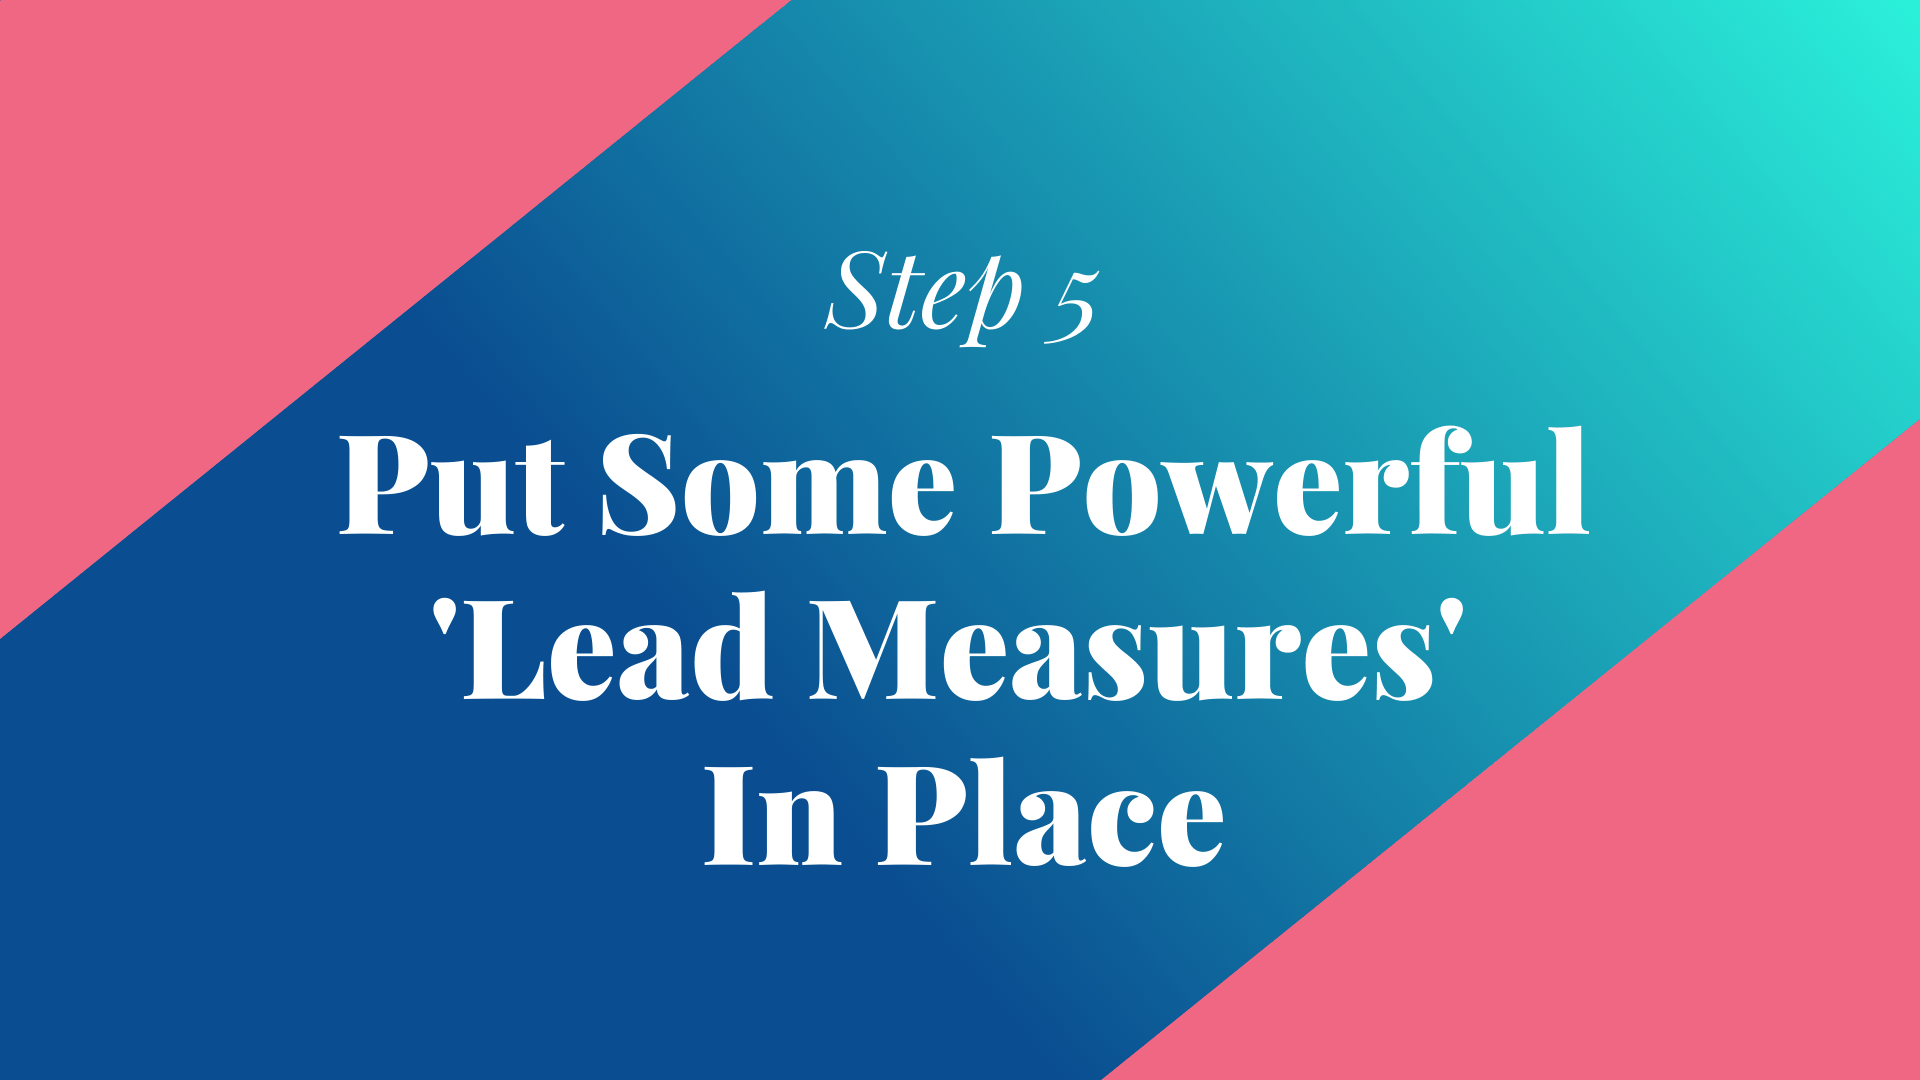 step 5 put some powerful lead measures in place